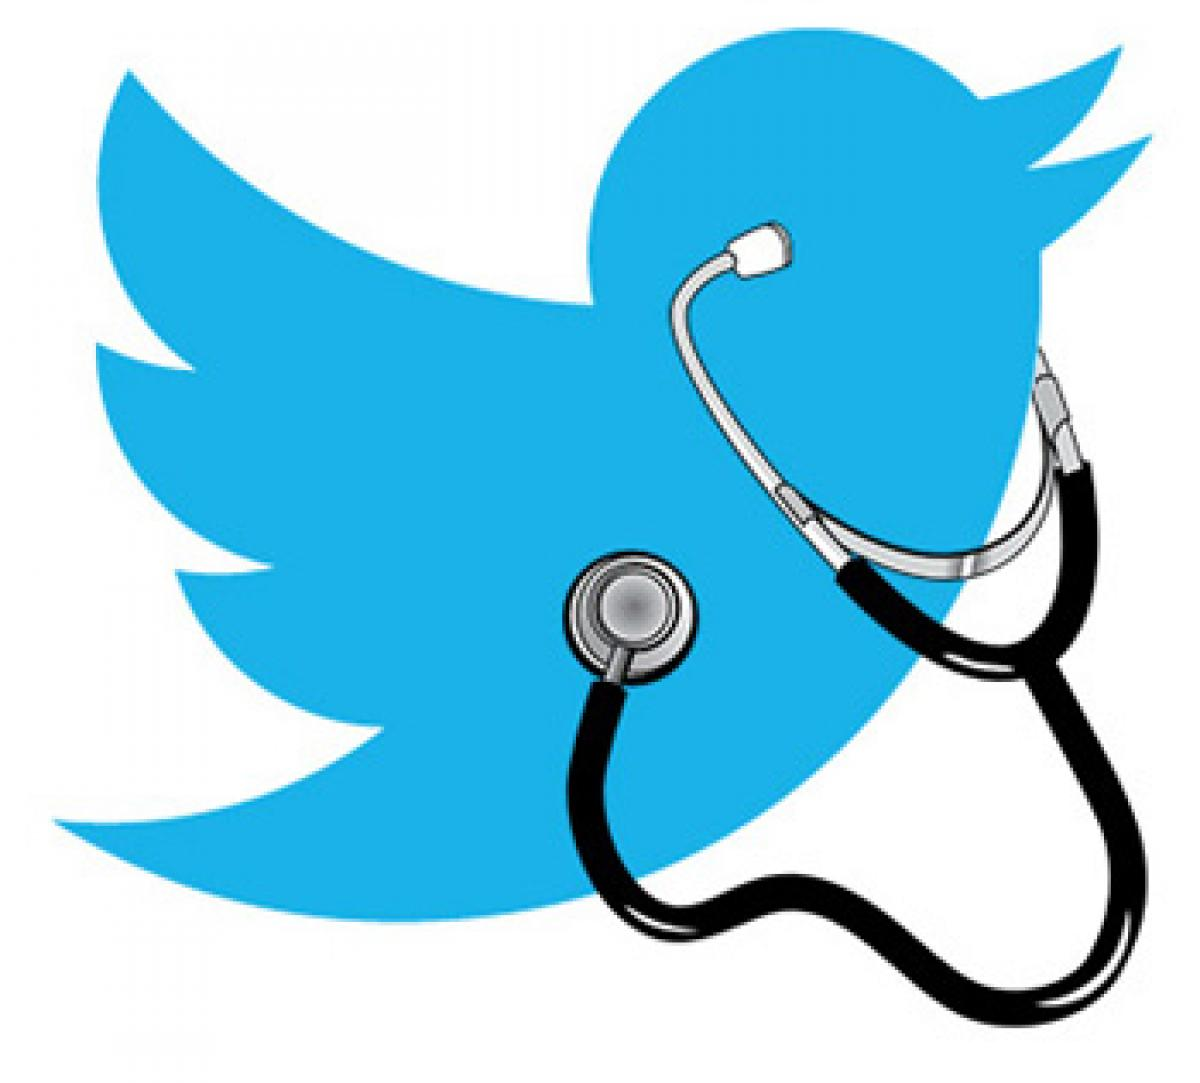 Twitter can disseminate cancer clinical trials information